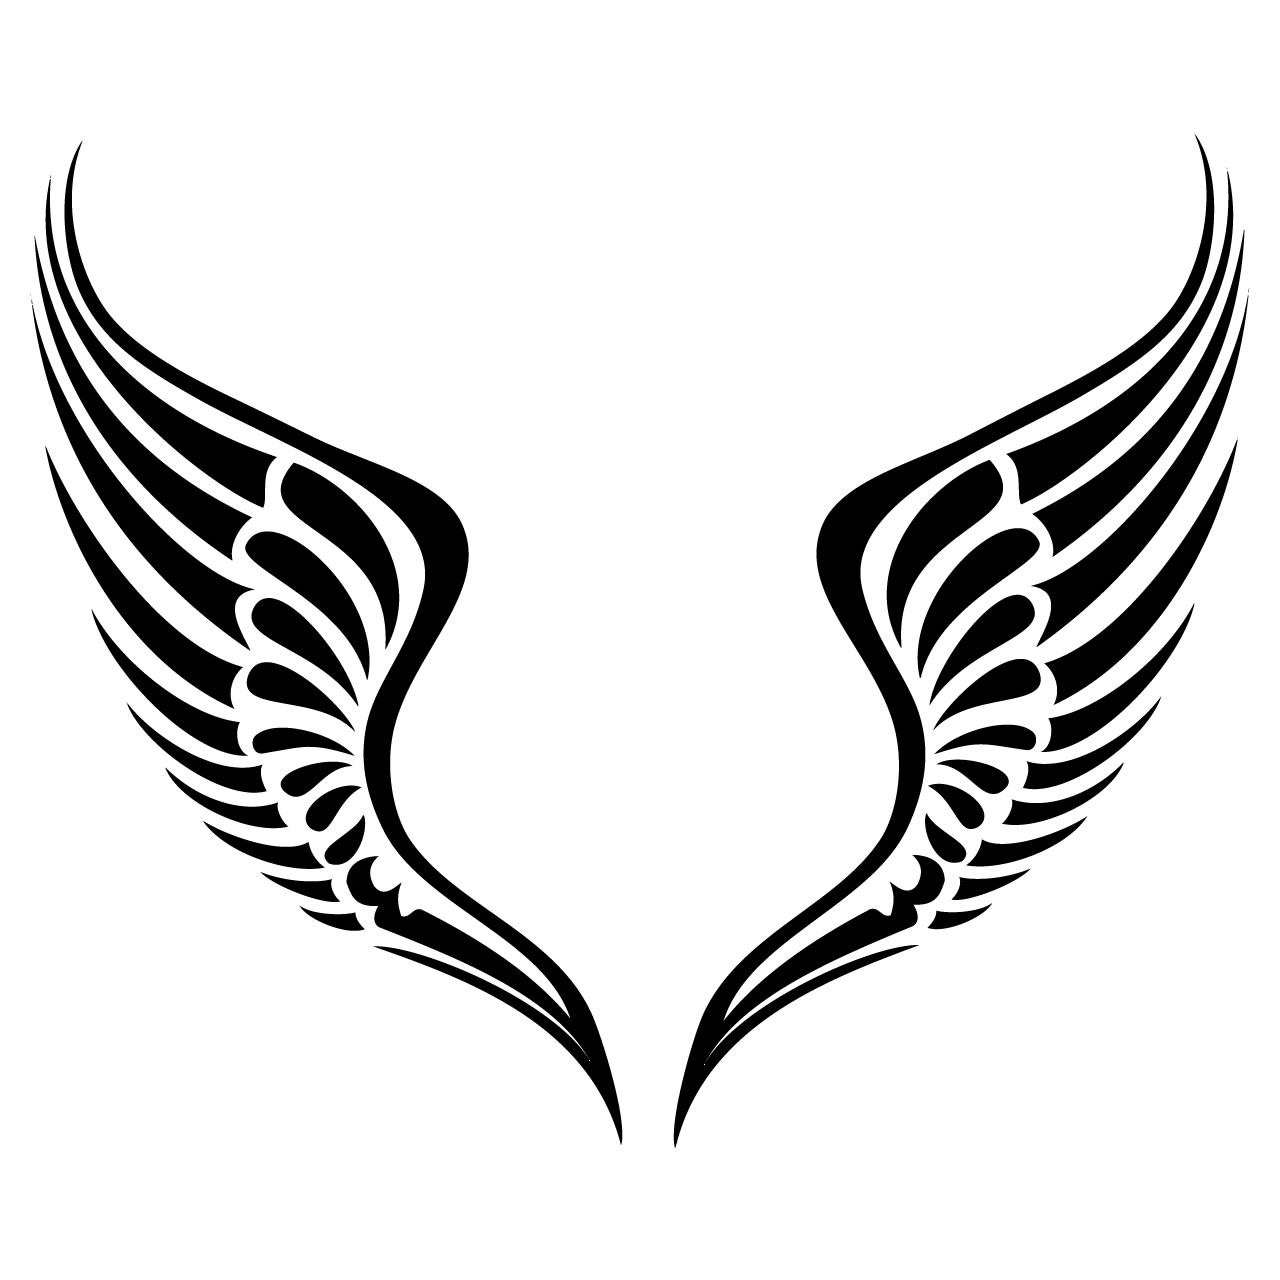 1280x1280 Eagle Wings Clipart